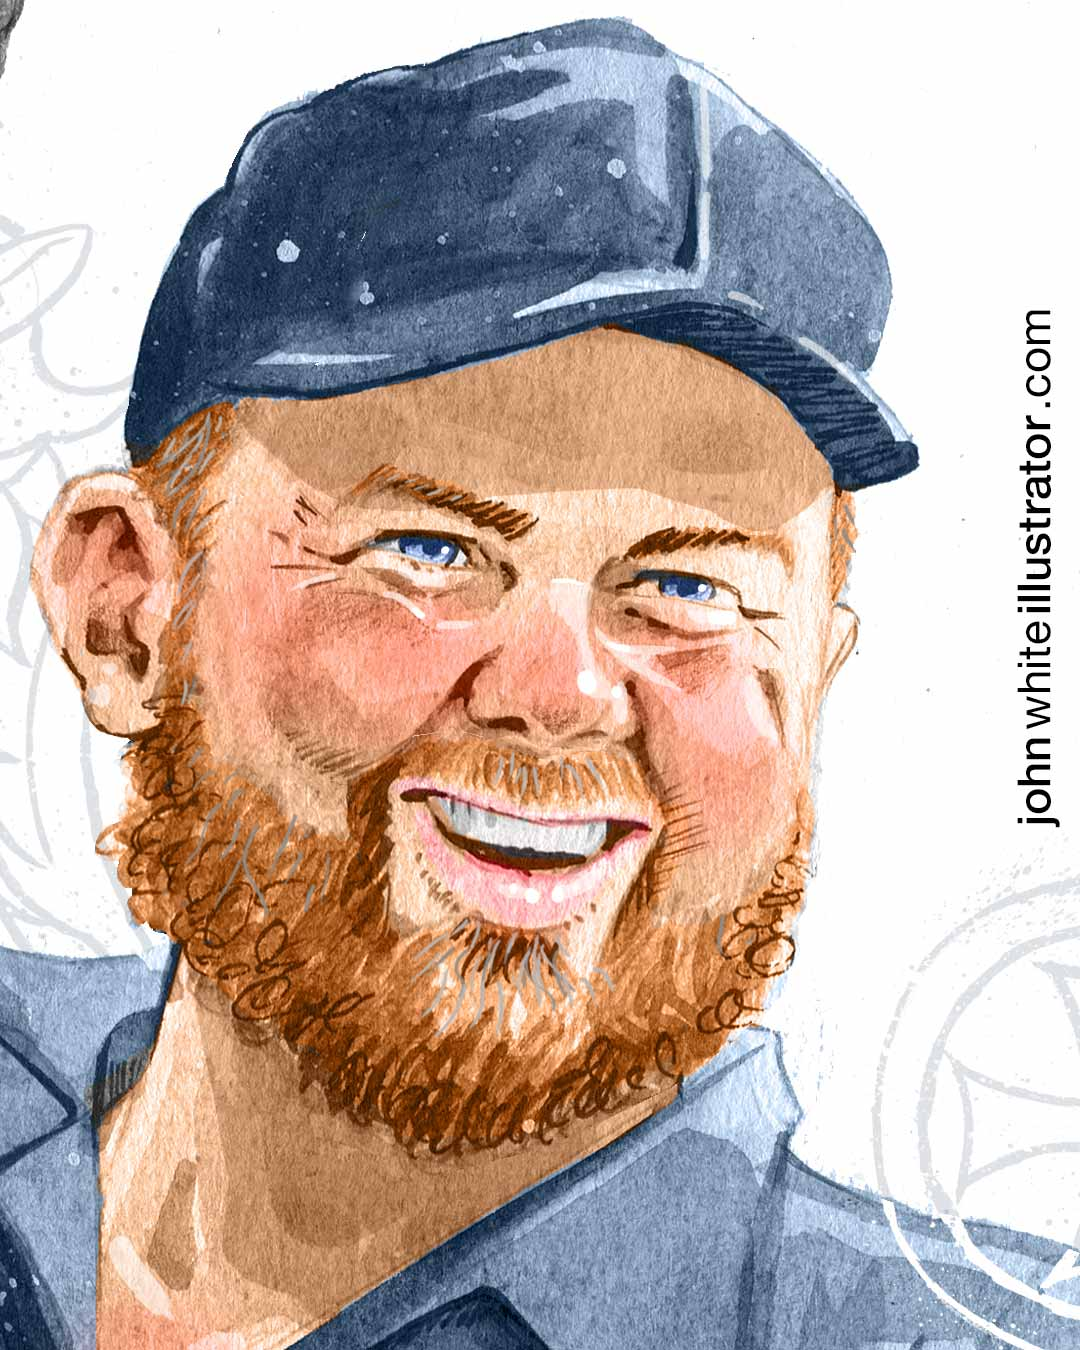 detail of editorial illustration of irish golfer shane lowry